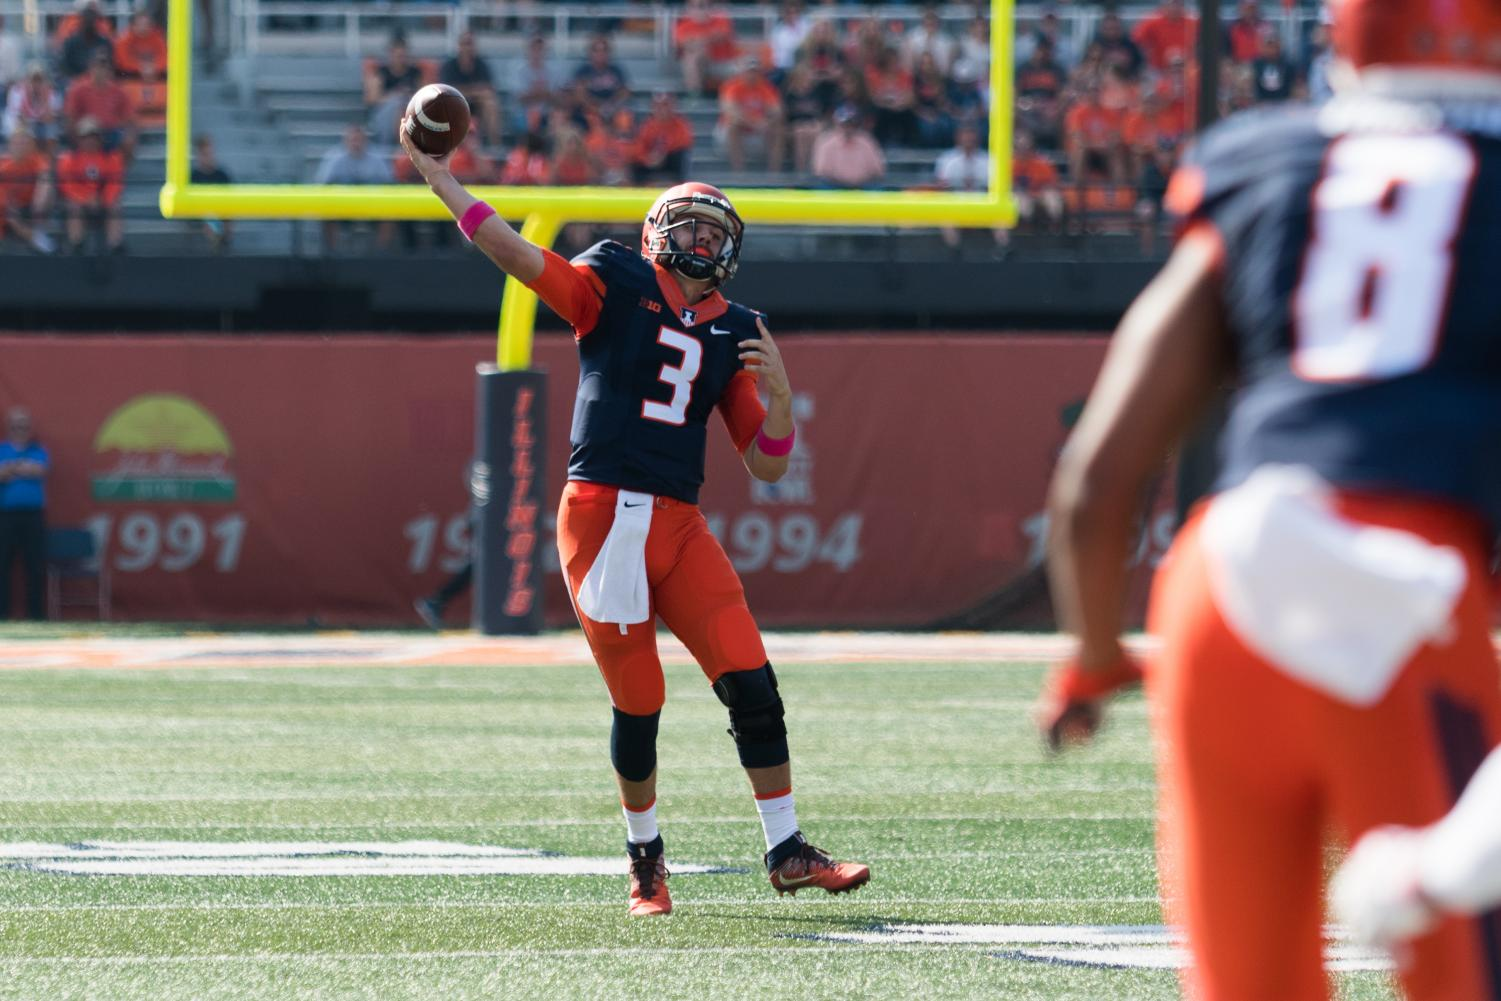 Illinois quarterback Jeff George, Jr. lobs a pass during the game against Rutgers on Saturday, Oct. 24.  The Illini lost 35-24